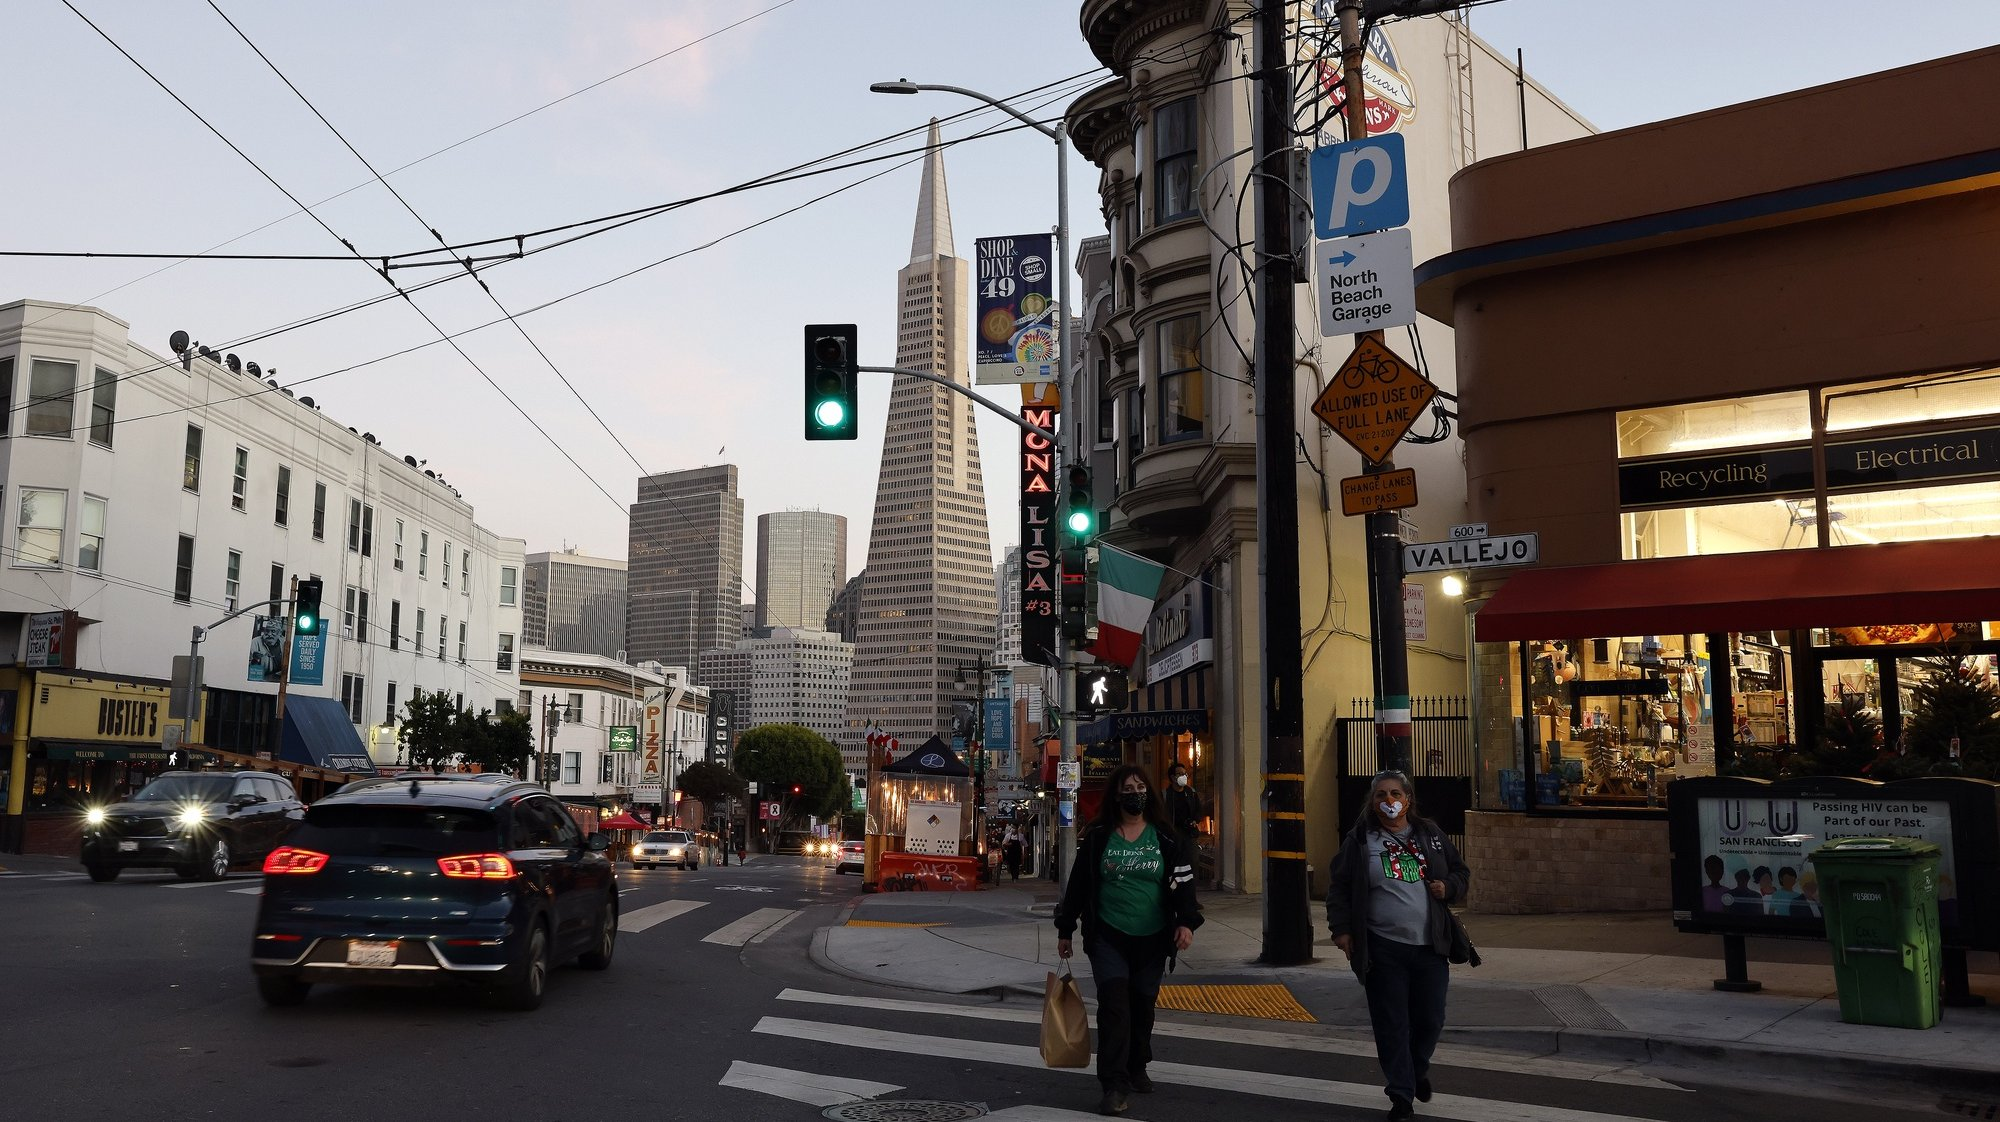 epa08853920 Pedestrians walk across a street in North Beach, as the Transamerica Pyramid building looms in the background, in San Francisco, California, USA, 30 November 2020. San Francisco is preparing for the most restrictive COVID-19 reopening tier (Purple), joining other Bay Area counties in a California curfew prohibiting non-essential business and personal gatherings from 10pm to 5am to help stop the spread the coronavirus, as the state is seeing the high rates of positive cases and hospitalizations.  EPA/JOHN G. MABANGLO